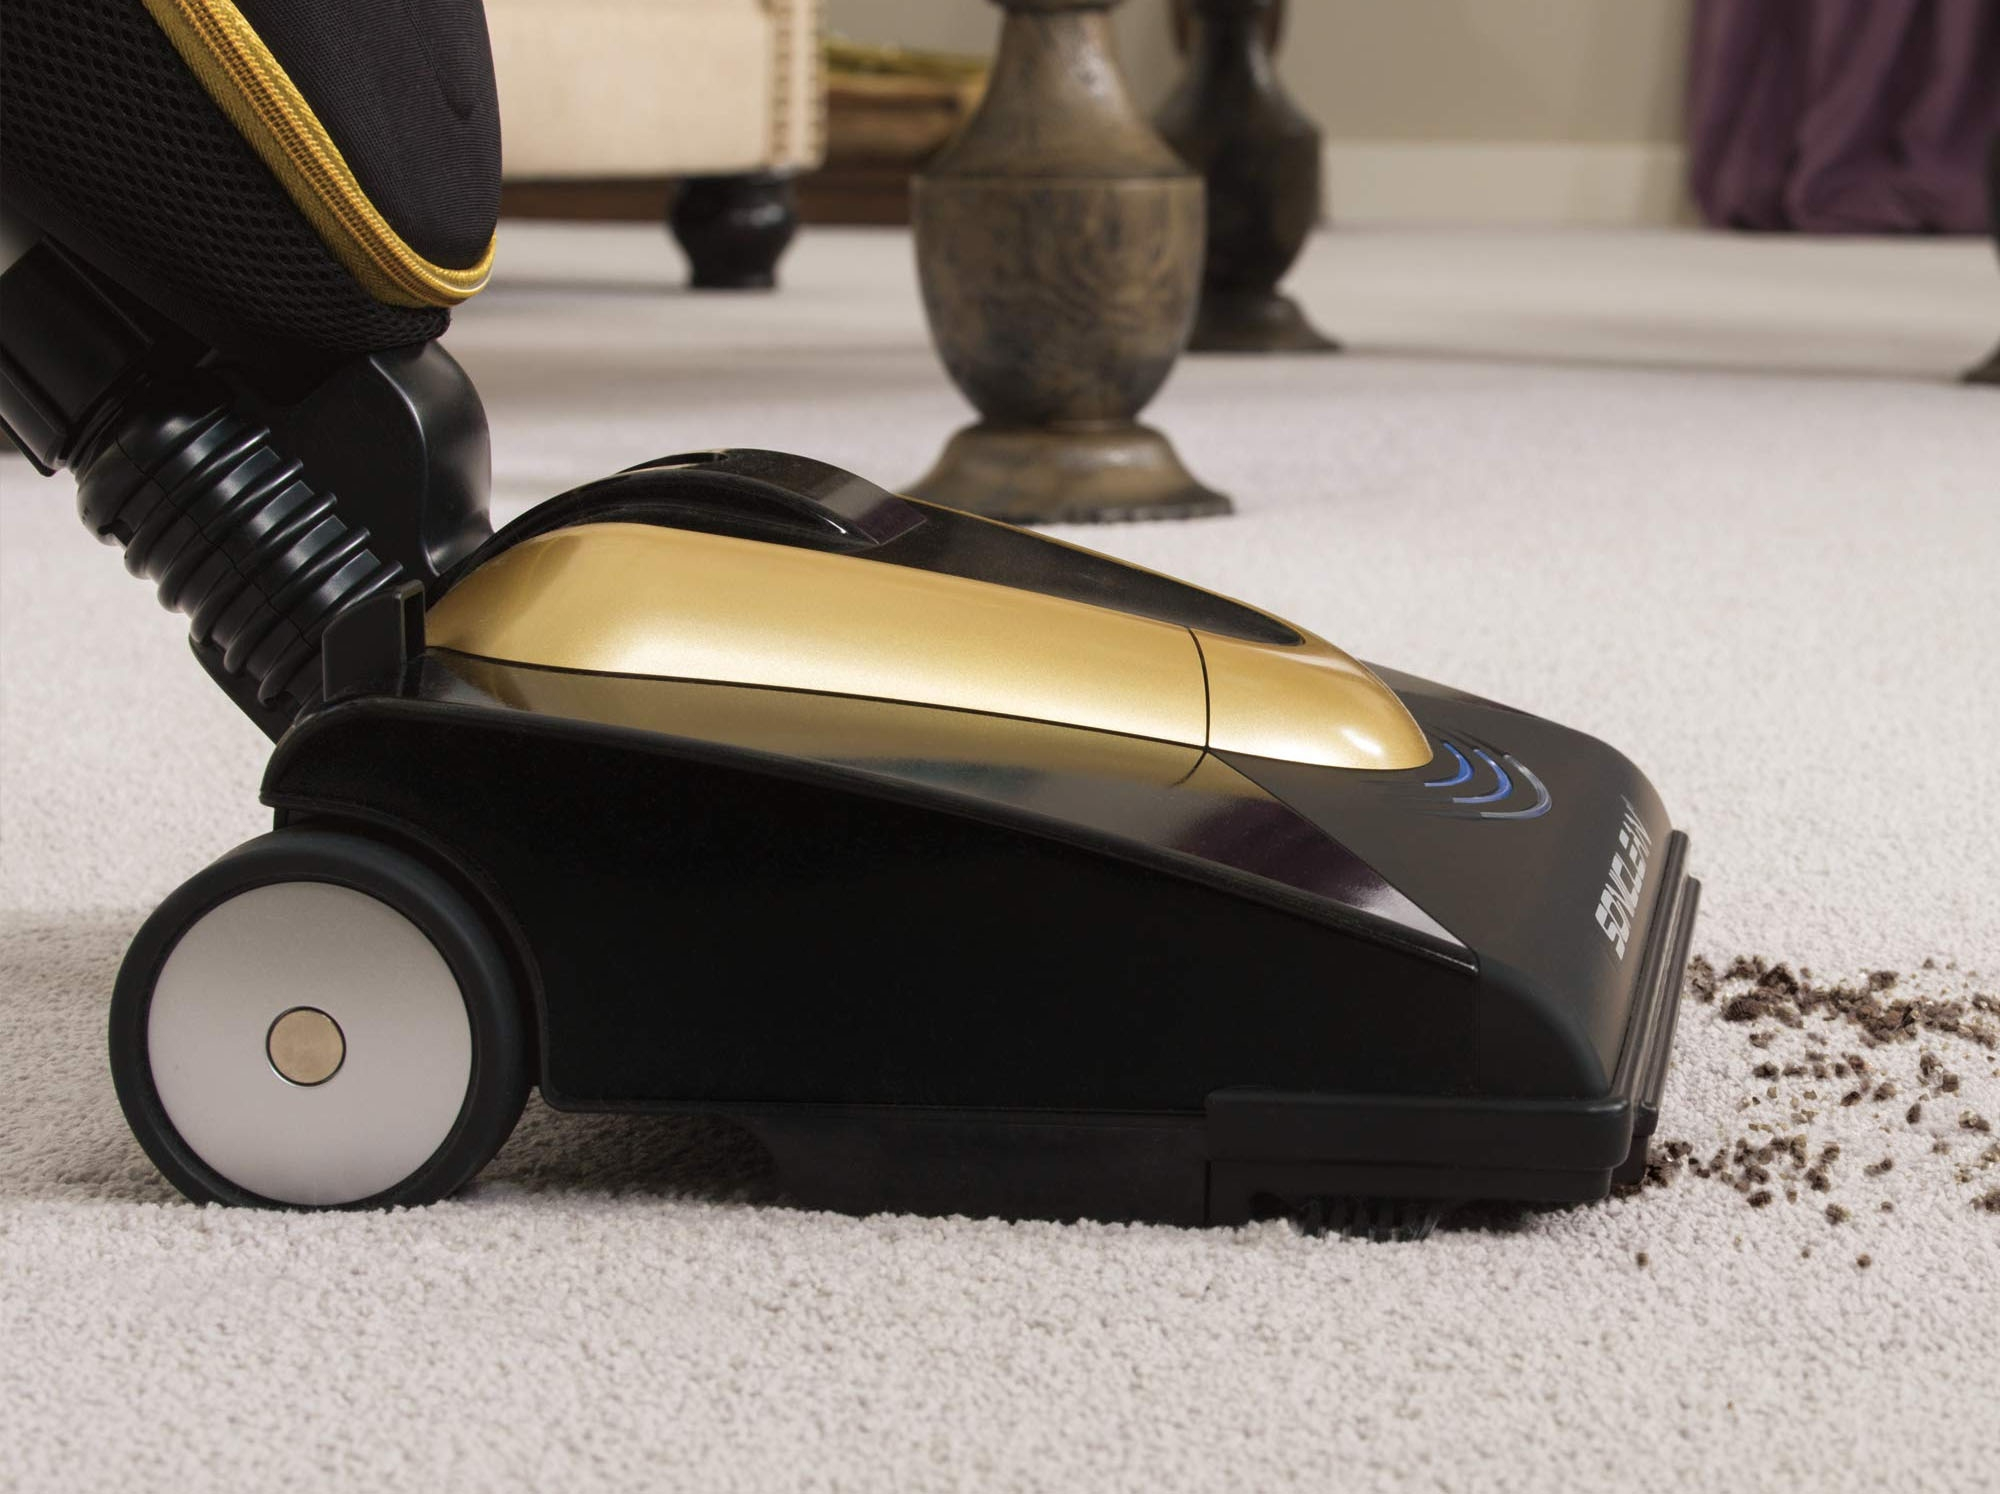 Best vacuum for soft carpet – Cleaning sensitive plush rugs